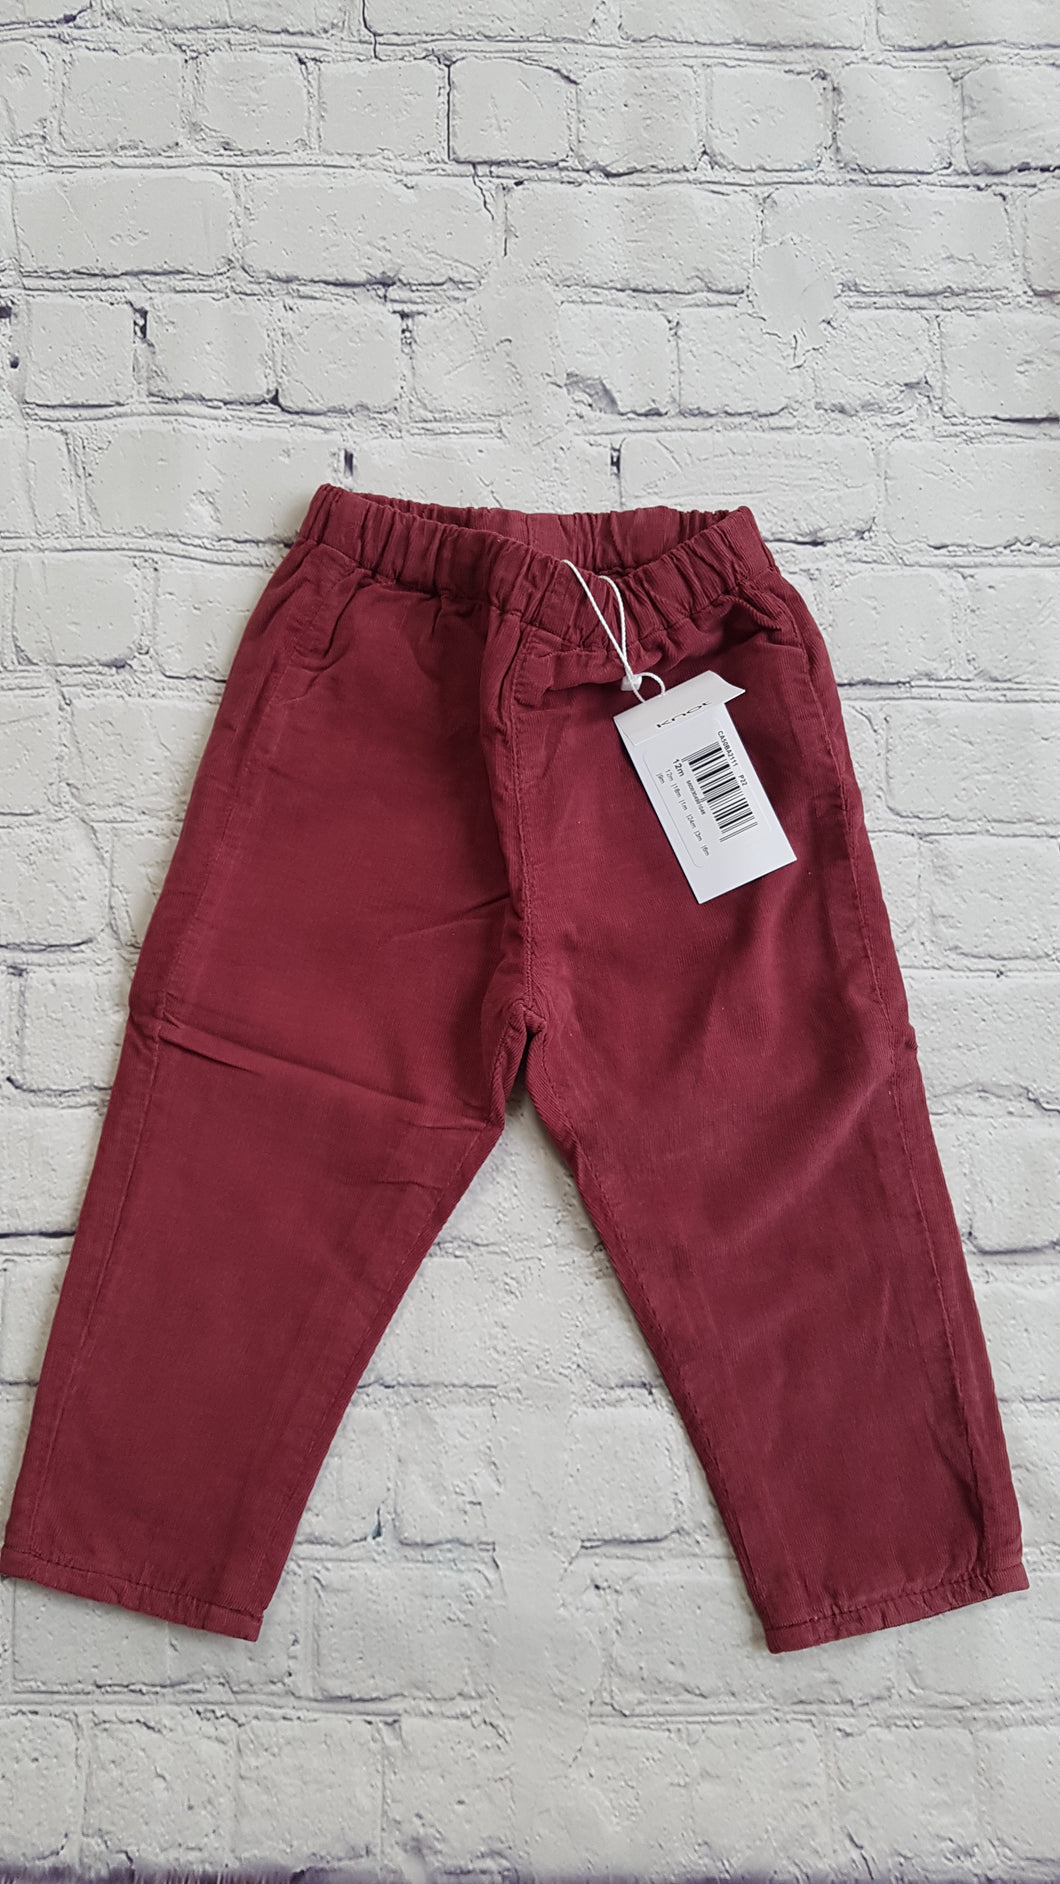 KNOT outlet trousers boy or girl 12m